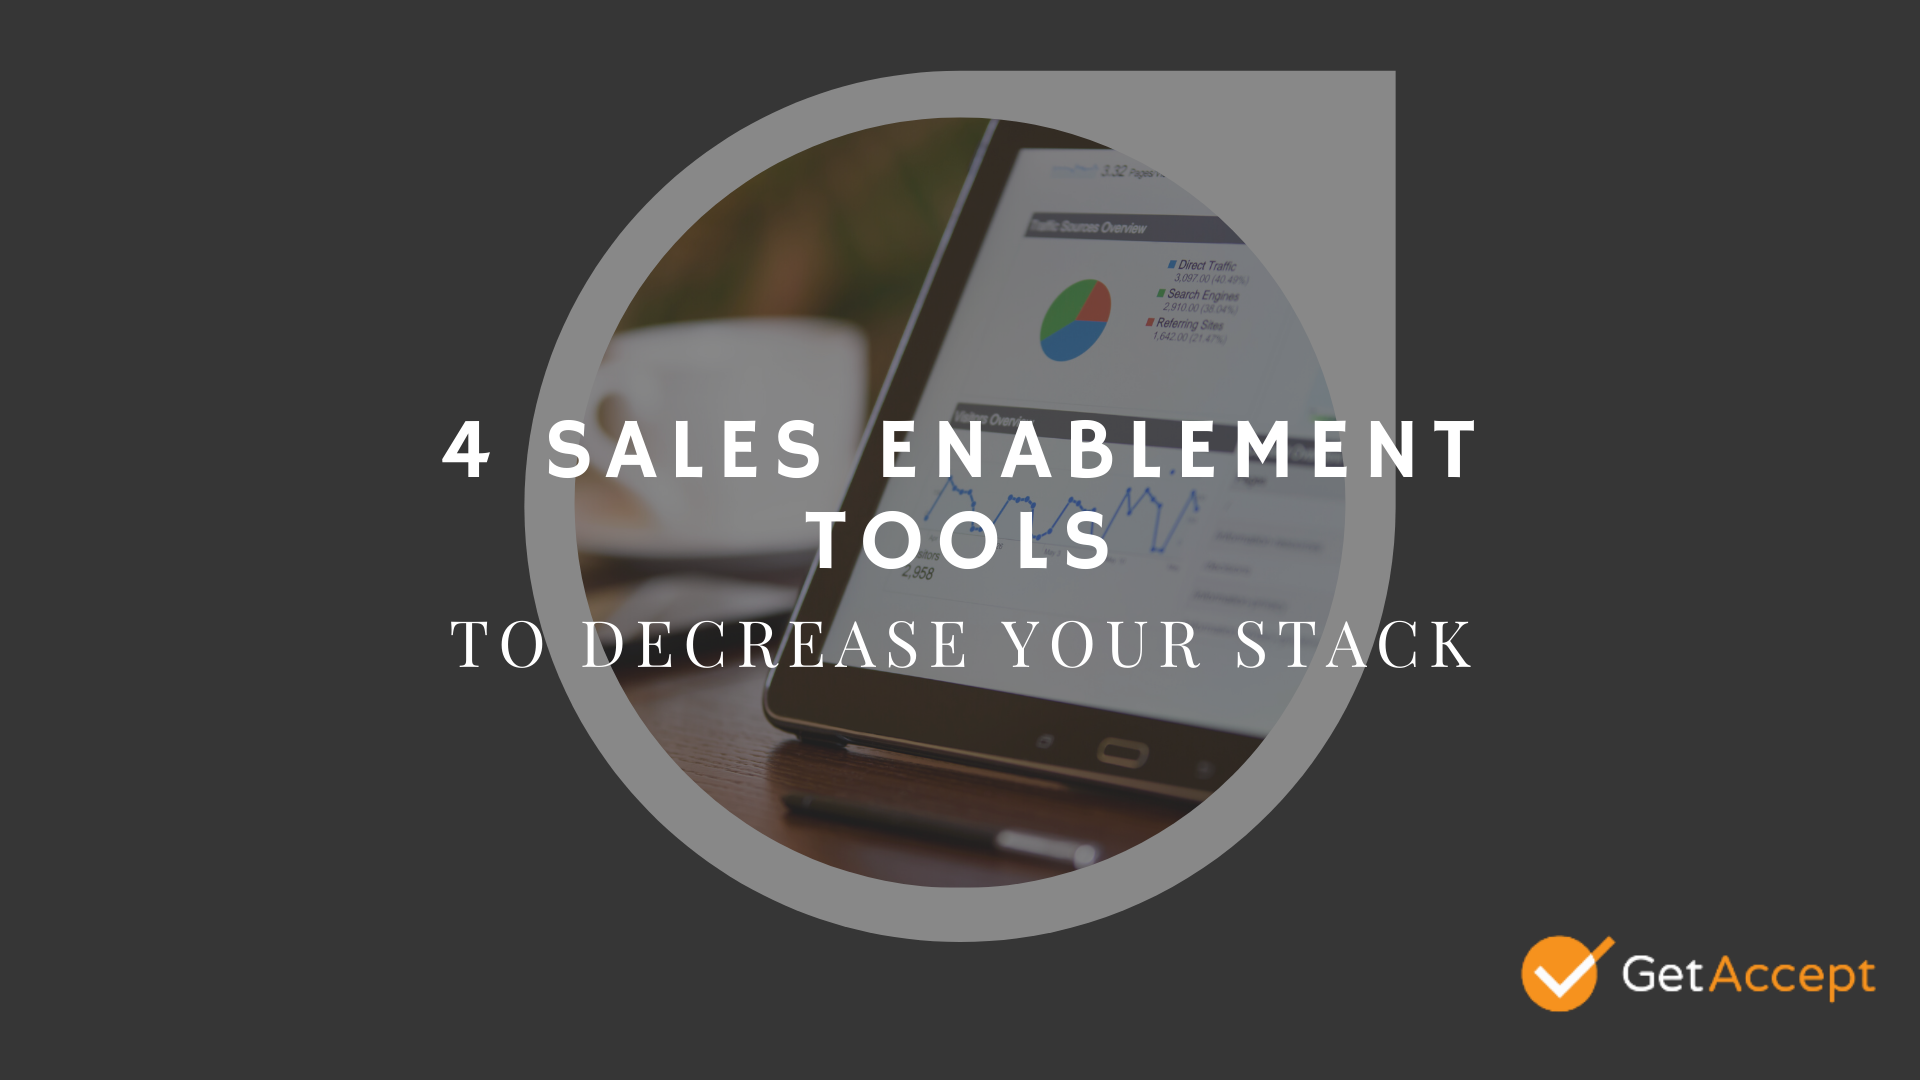 4 Sales Enablement Tools to Decrease Your Stack